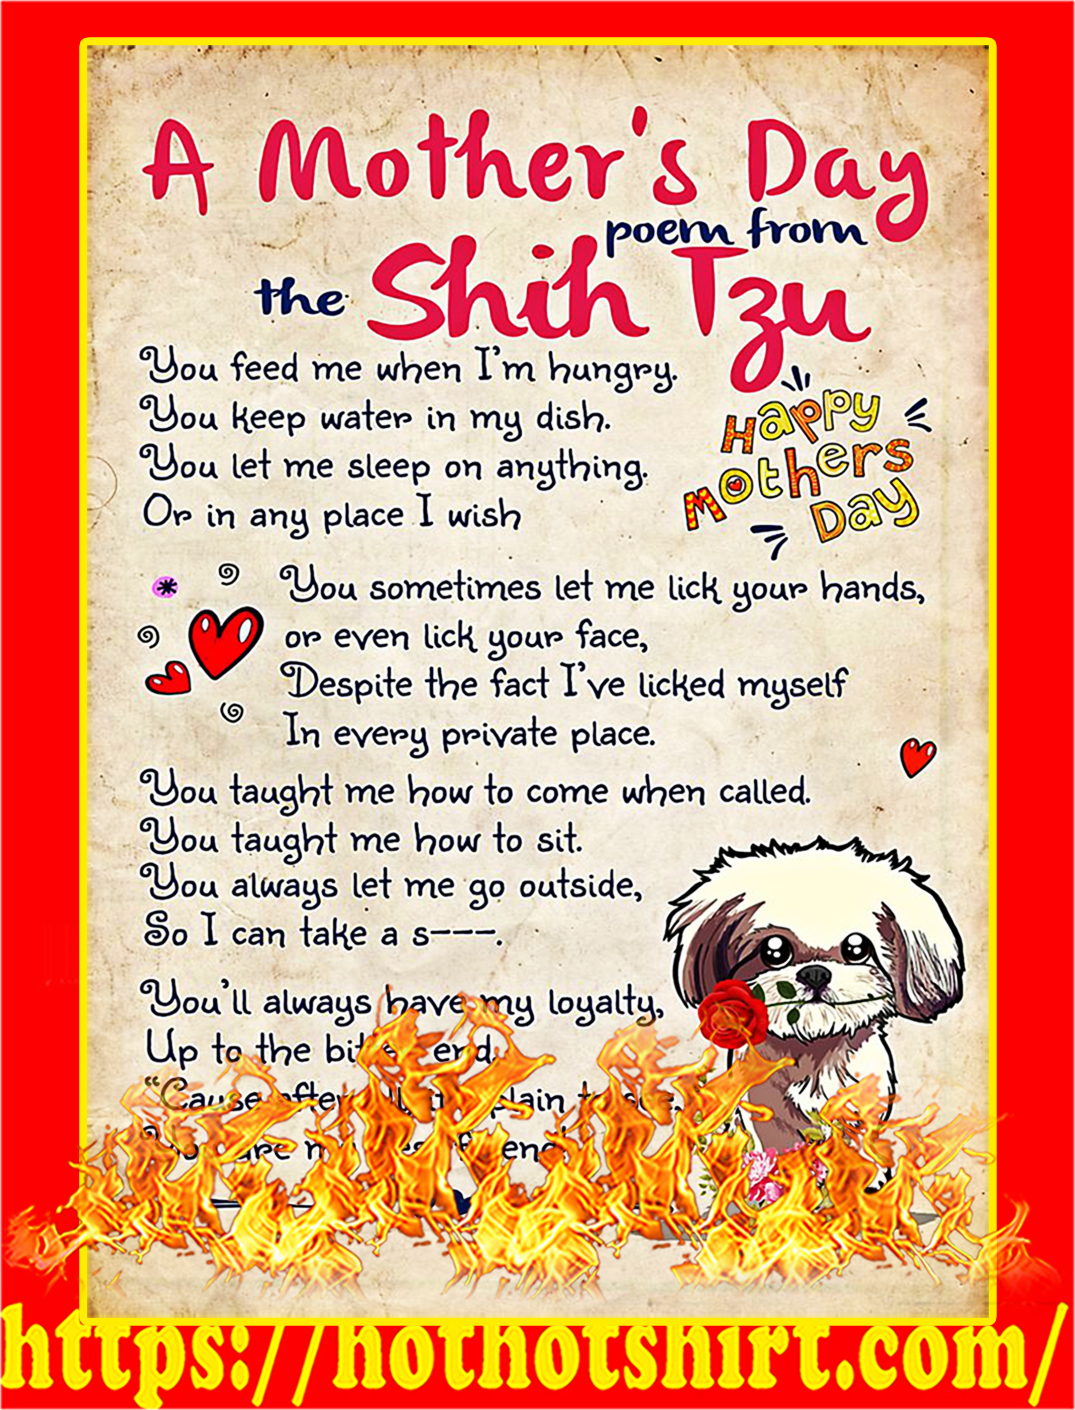 A mother's day poem from the shih tzu poster - A1